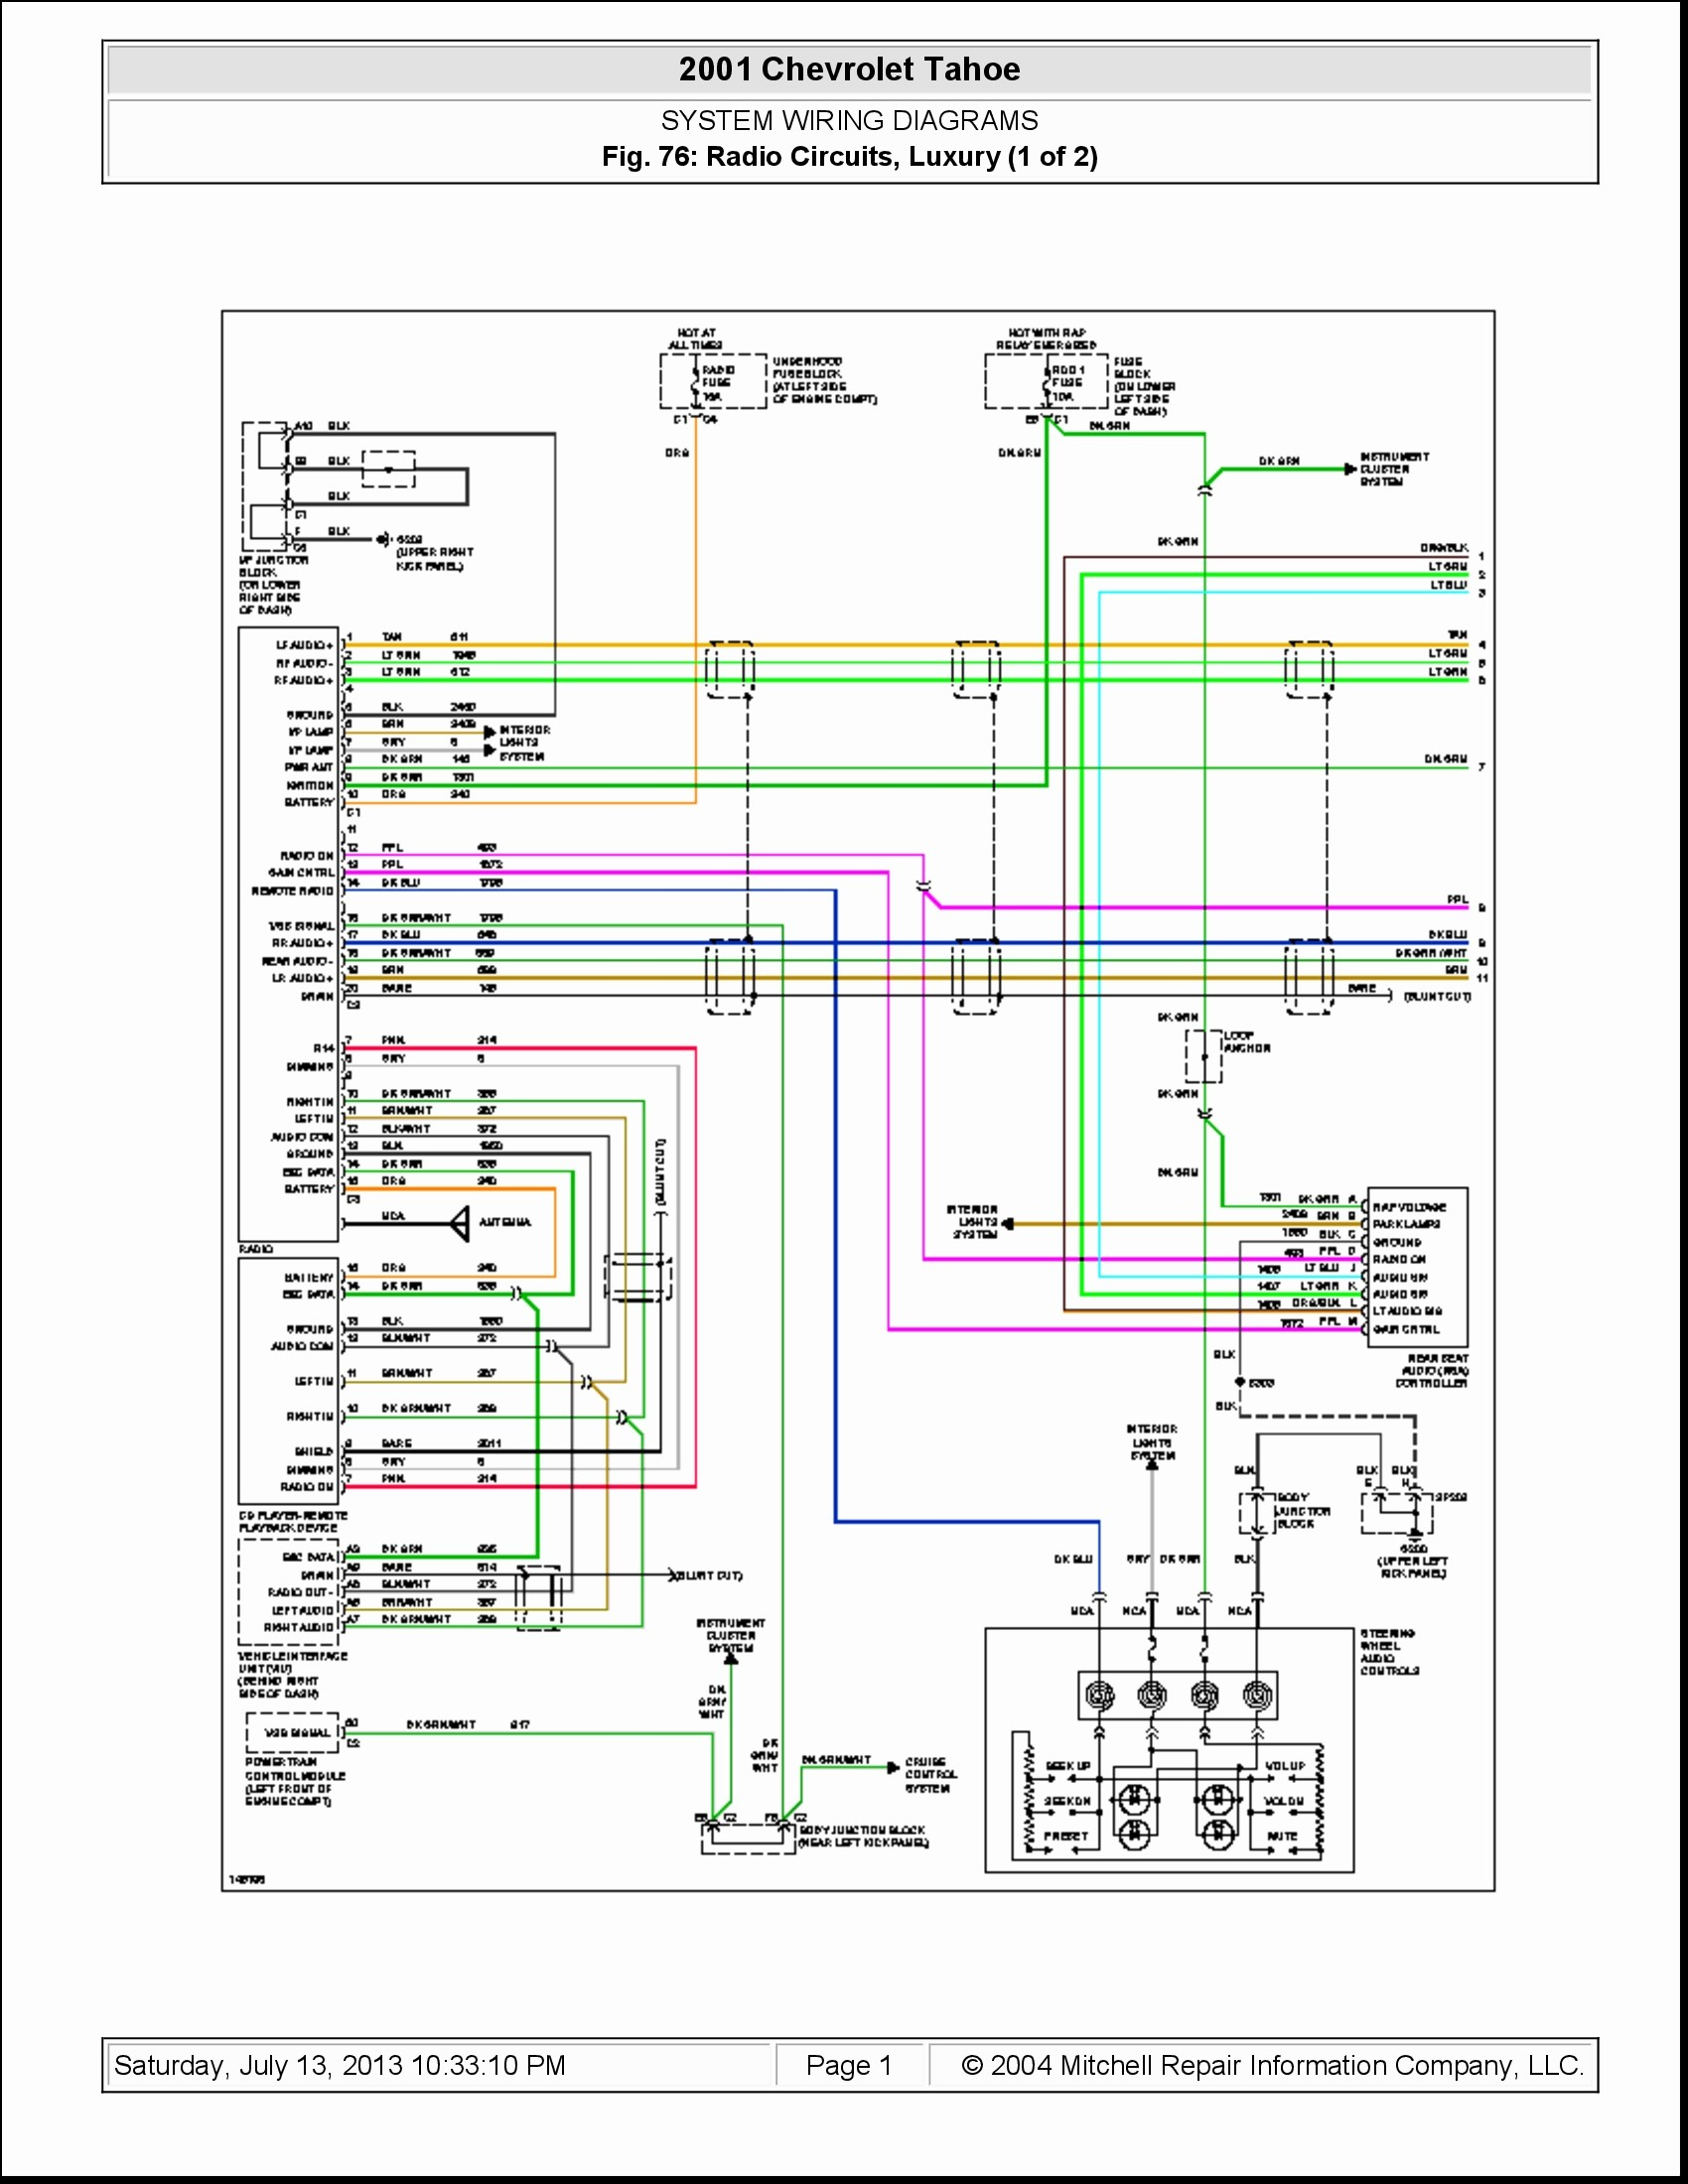 Full Size of Wiring Diagram 2000 Chevy S10 Wiring Diagram Unique Chevy Alternator Wiring Diagram